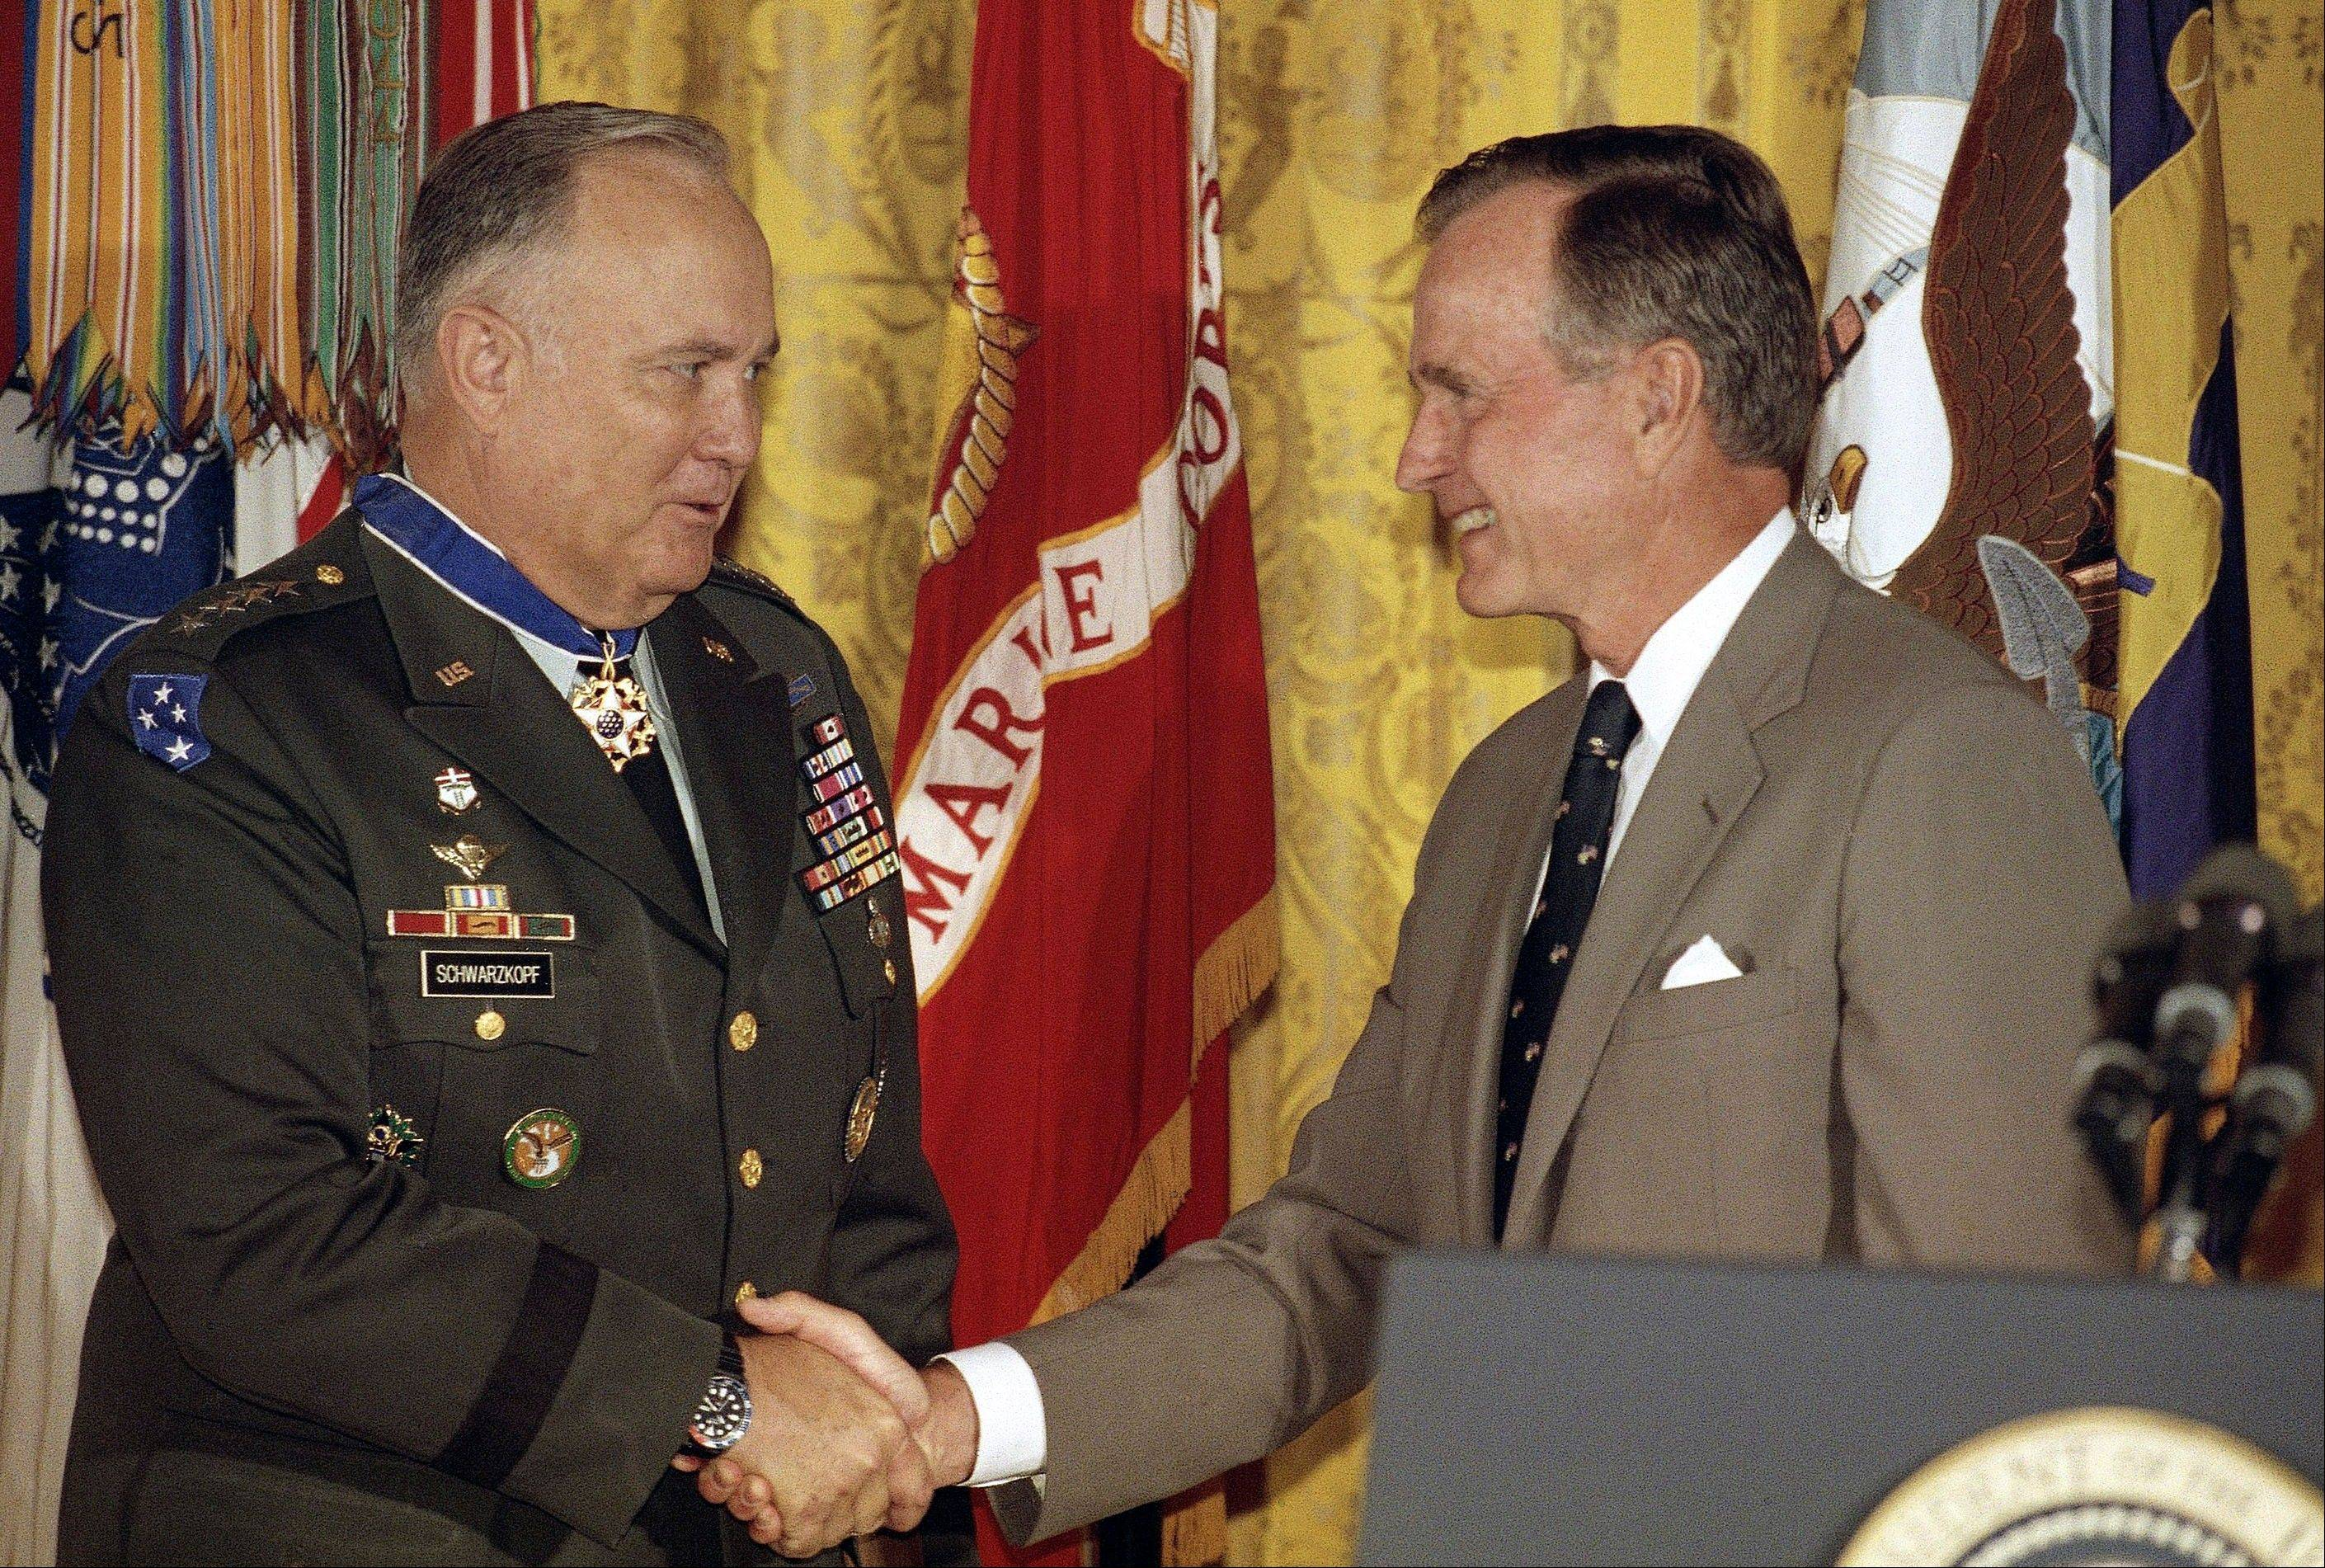 In this July 4, 1991, file photo, President George H.W. Bush congratulates Desert Storm commander Gen. Norman Schwarzkopf after presenting him with the medal of freedom at the White House in Washington. Schwarzkopf died Thursday, Dec. 27, 2012 in Tampa, Fla. He was 78.